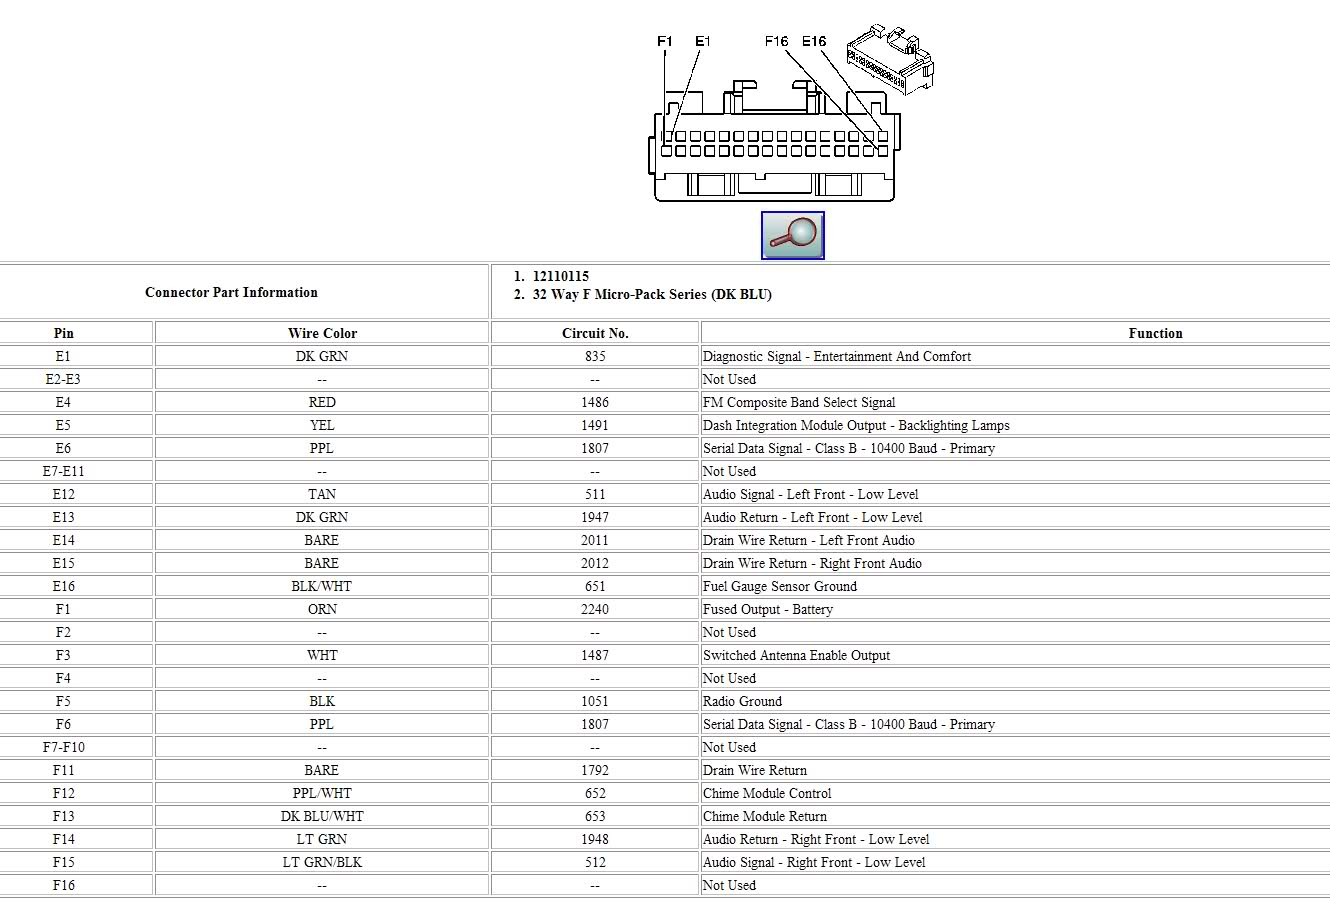 [SCHEMATICS_4HG]  DIAGRAM] 2002 Cadillac Escalade Bose Stereo Wiring Diagram Sample Wiring  Diagram FULL Version HD Quality Wiring Diagram -  FUSEOVERLAY6587.ILCASTAGNETOAMATRICE.IT | Cadillac Bose Radio Wiring Diagram |  | fuseoverlay6587.ilcastagnetoamatrice.it